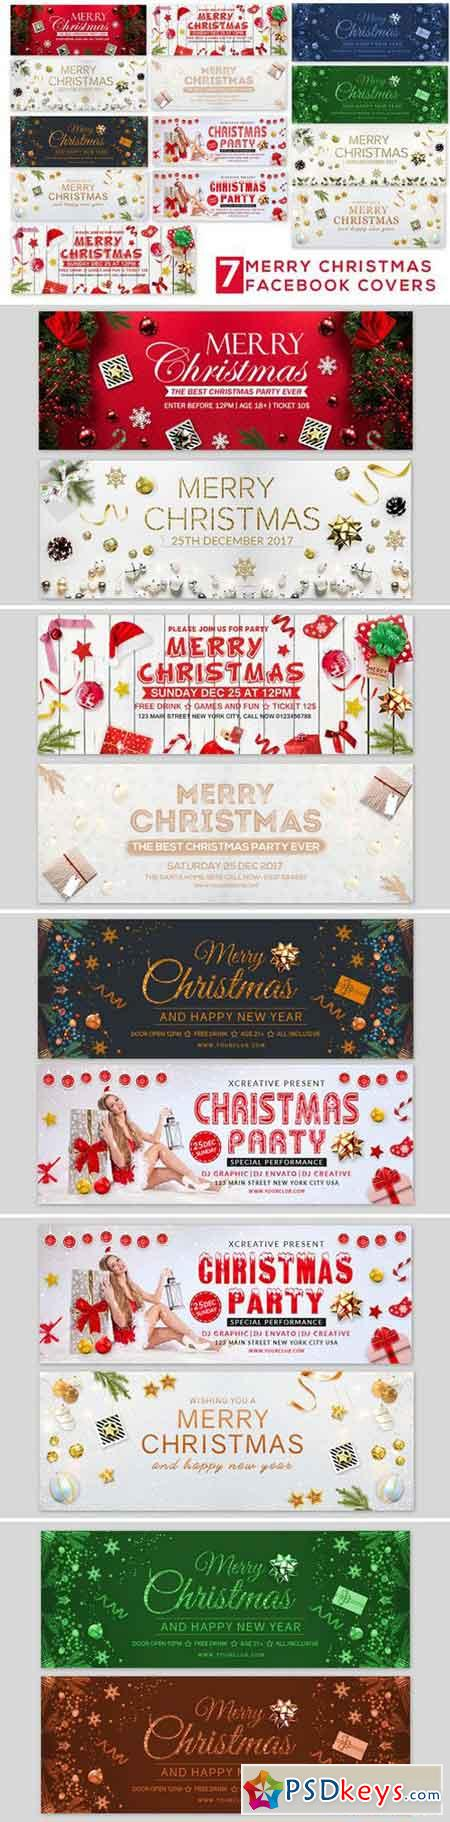 Merry Christmas Facebook Covers 2137790